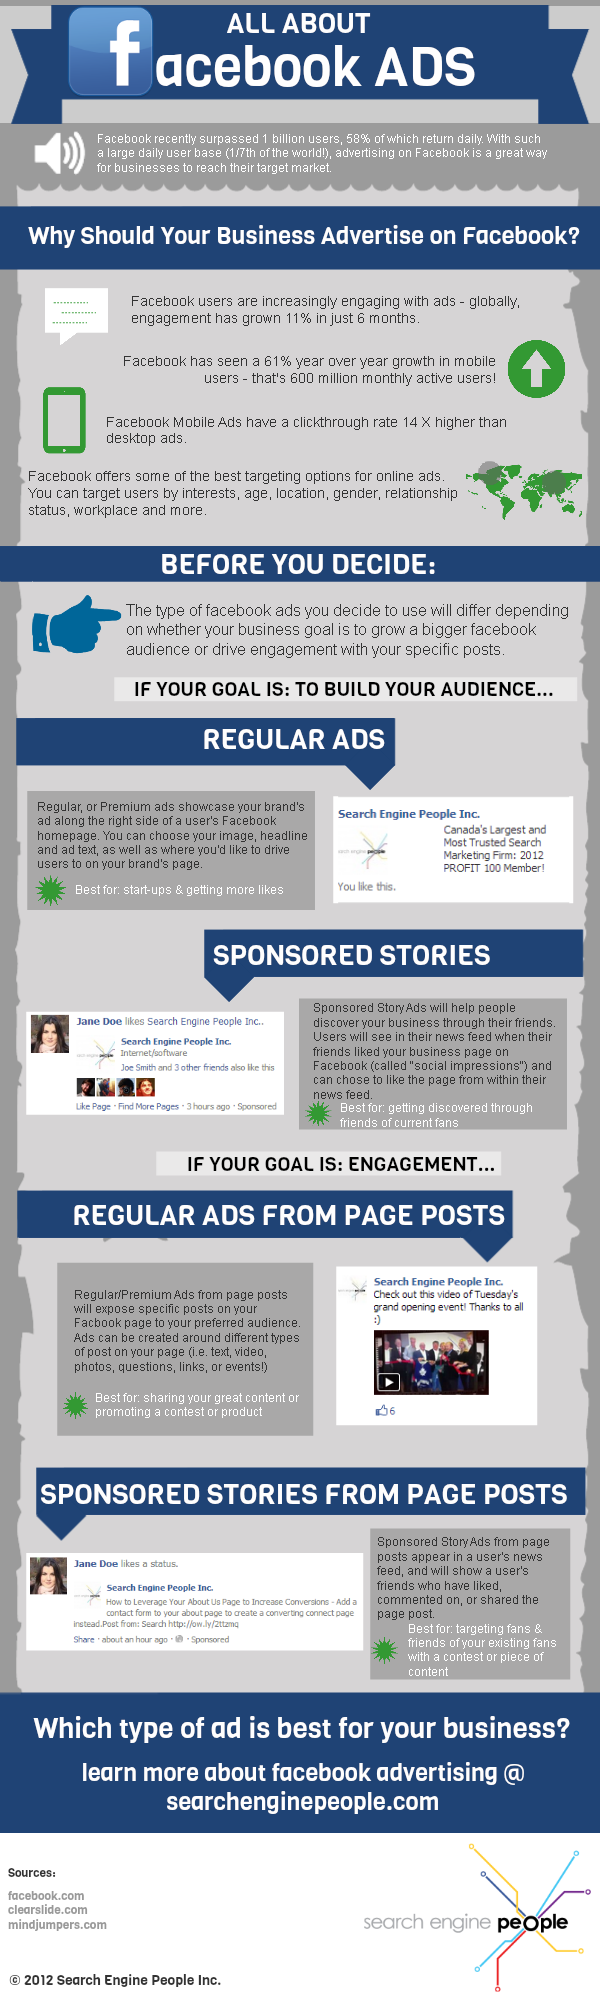 All About facebook Ads [INFOGRAPHIC]